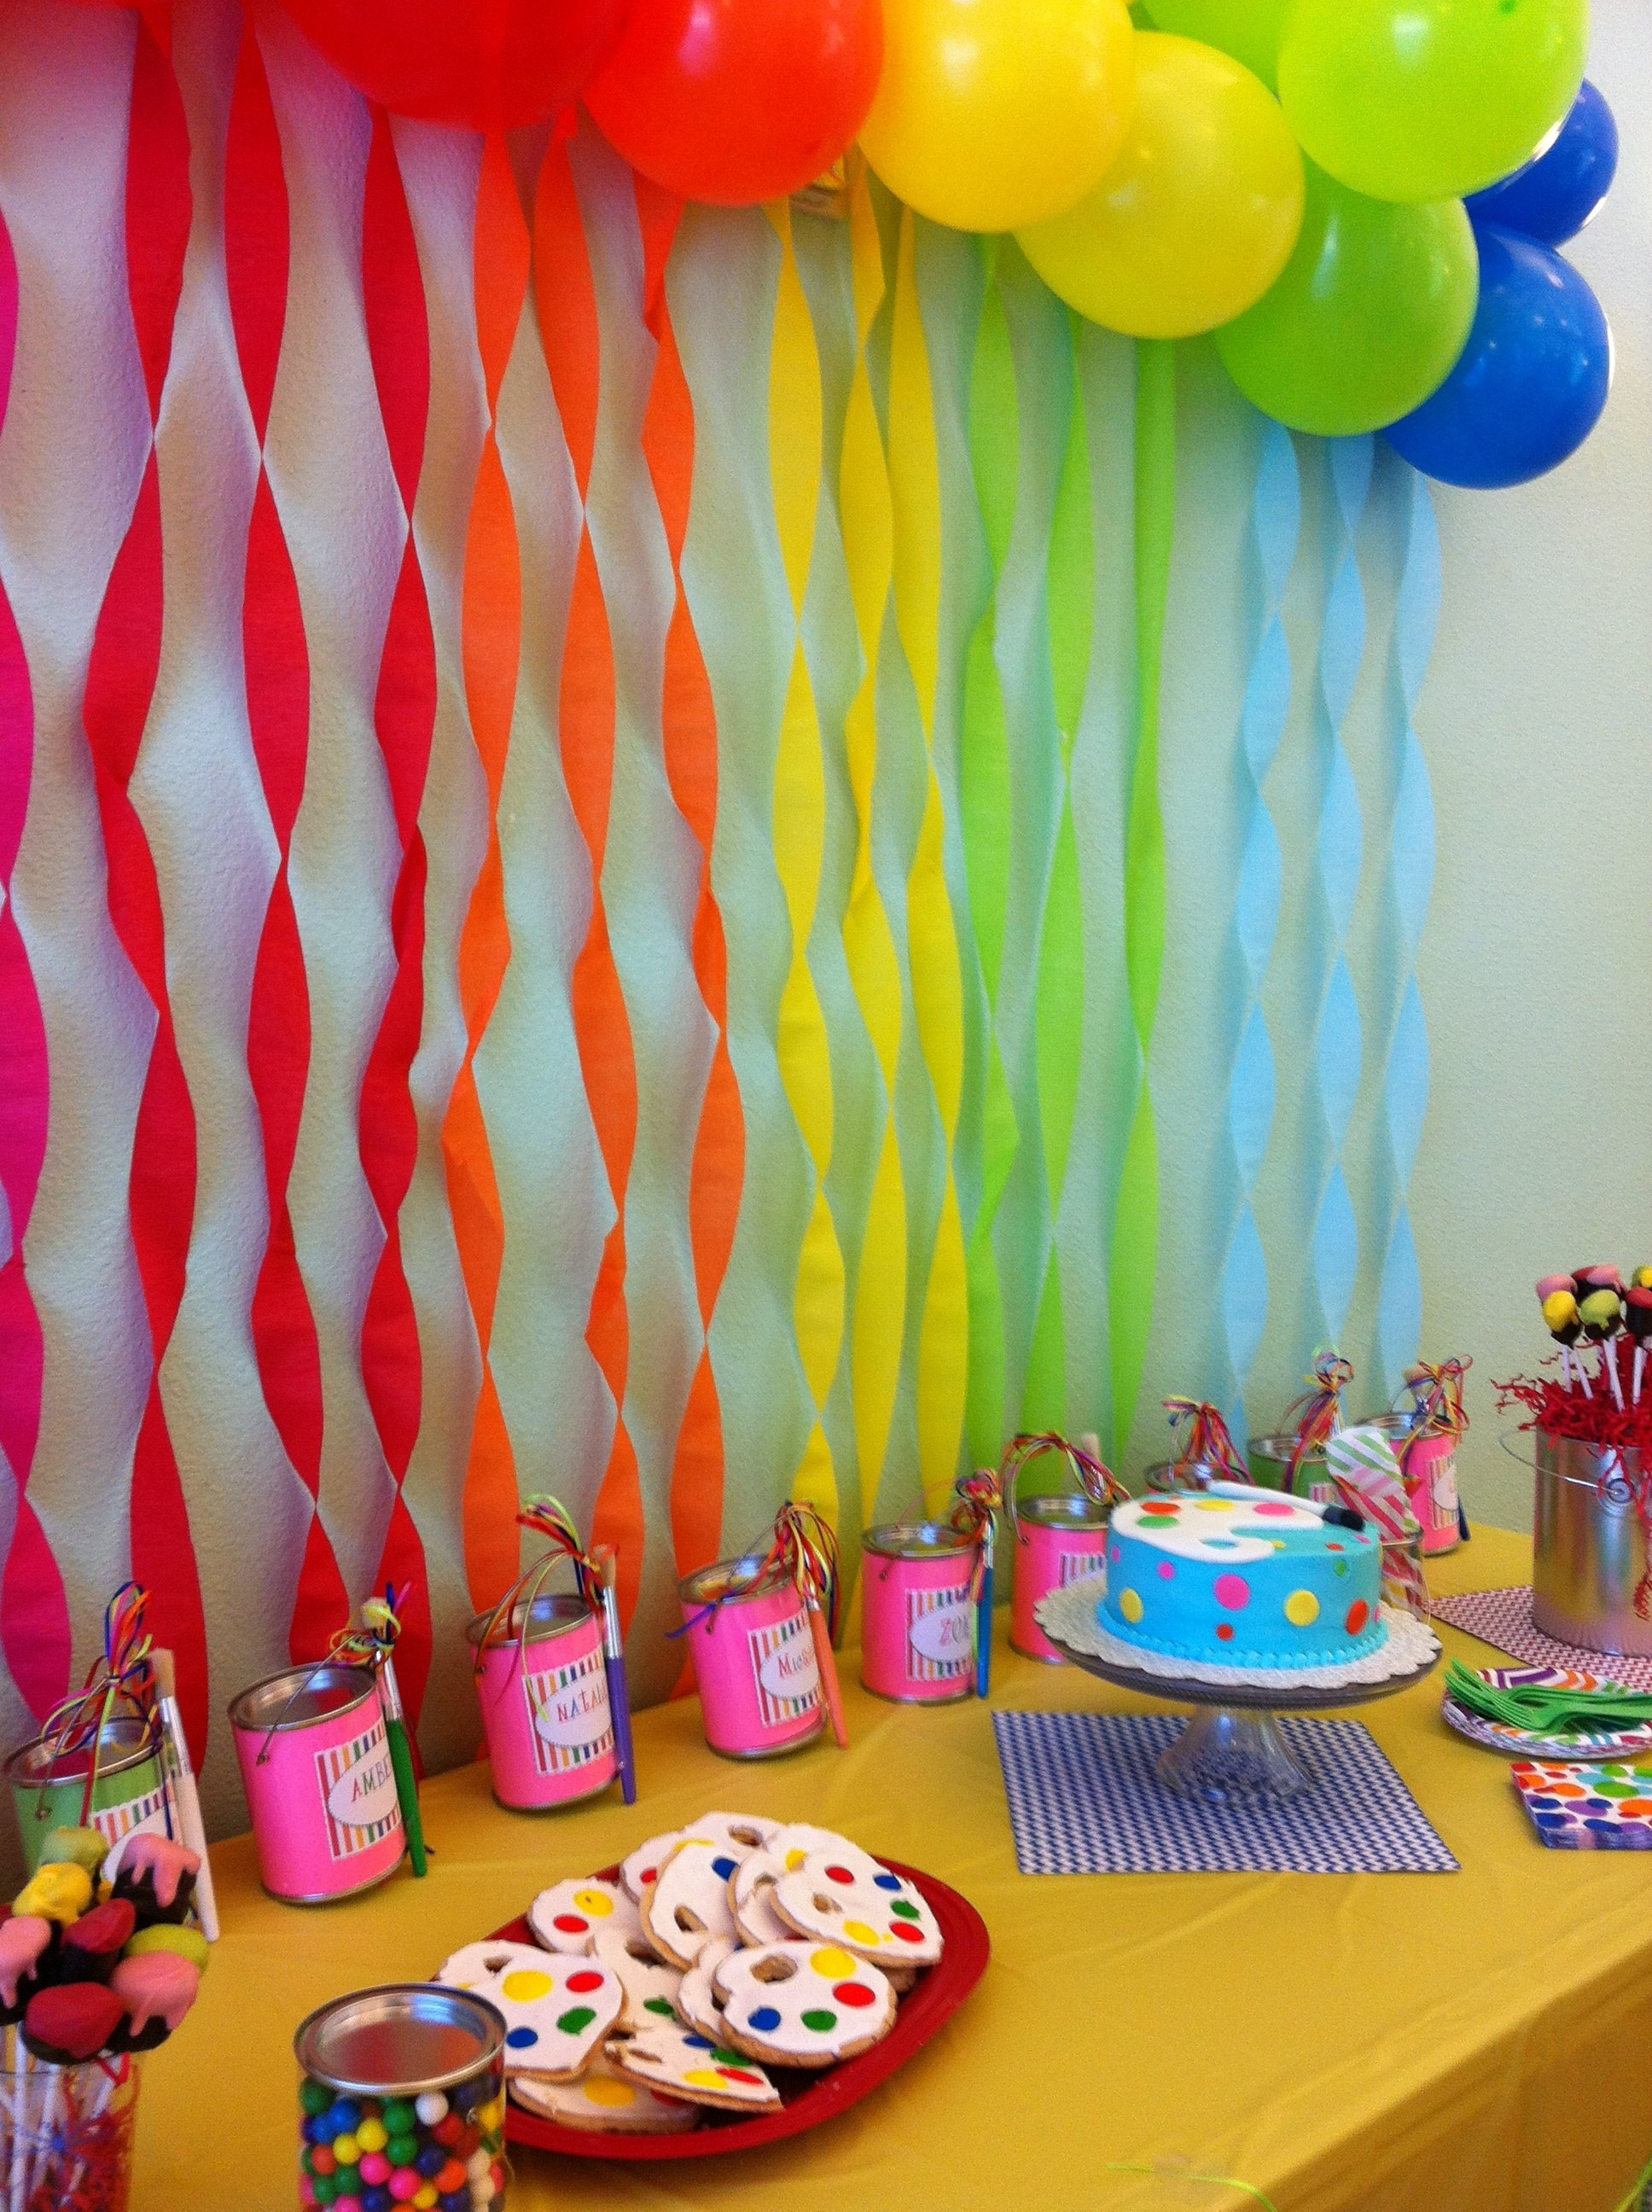 10 Most Recommended 9 Yr Old Birthday Party Ideas 8 year old girl birthday art party art party pinterest art 9 2021